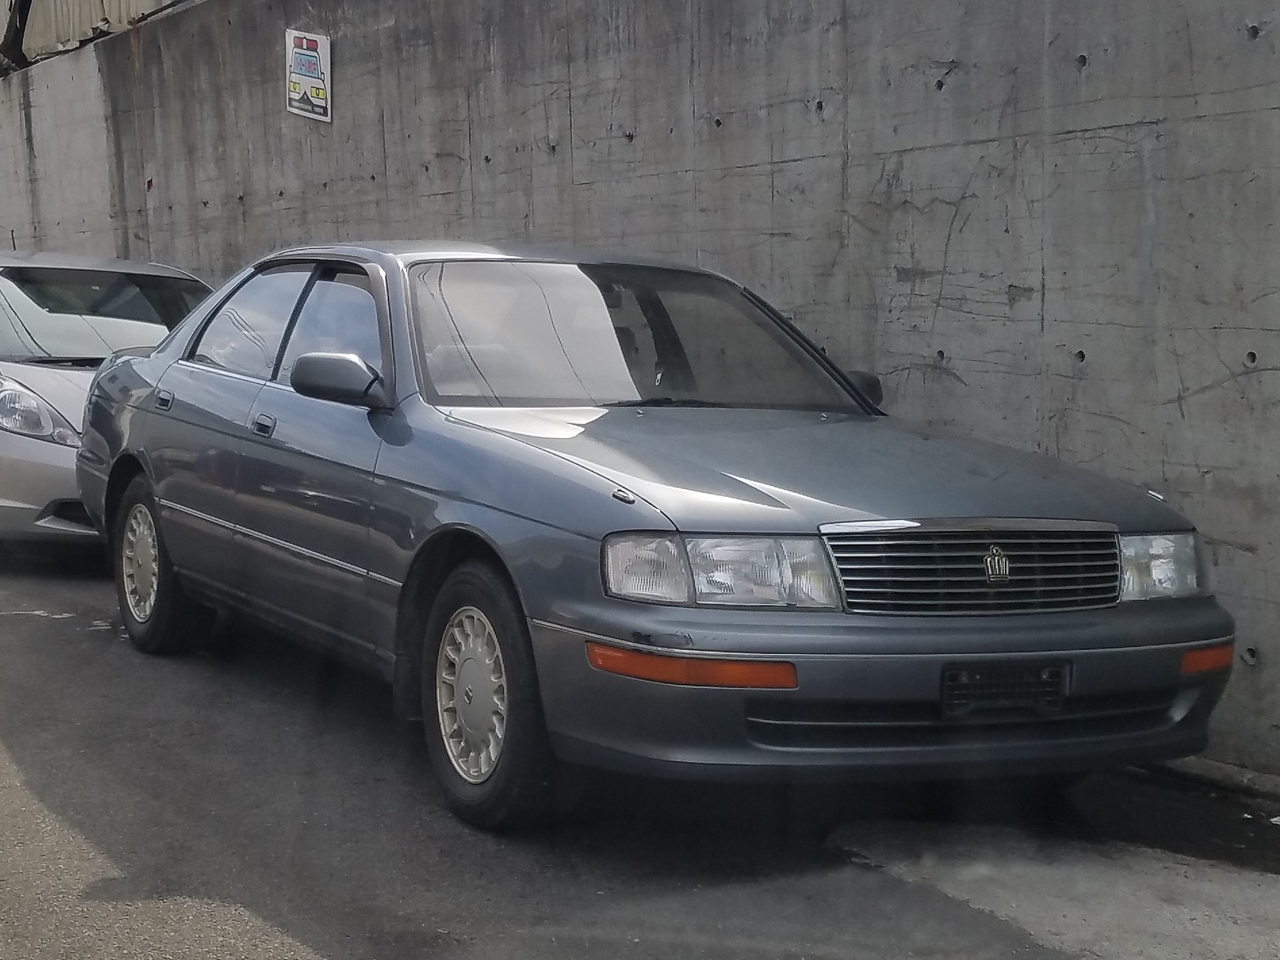 Toyota crown jzs141 royalsaloon 2 f